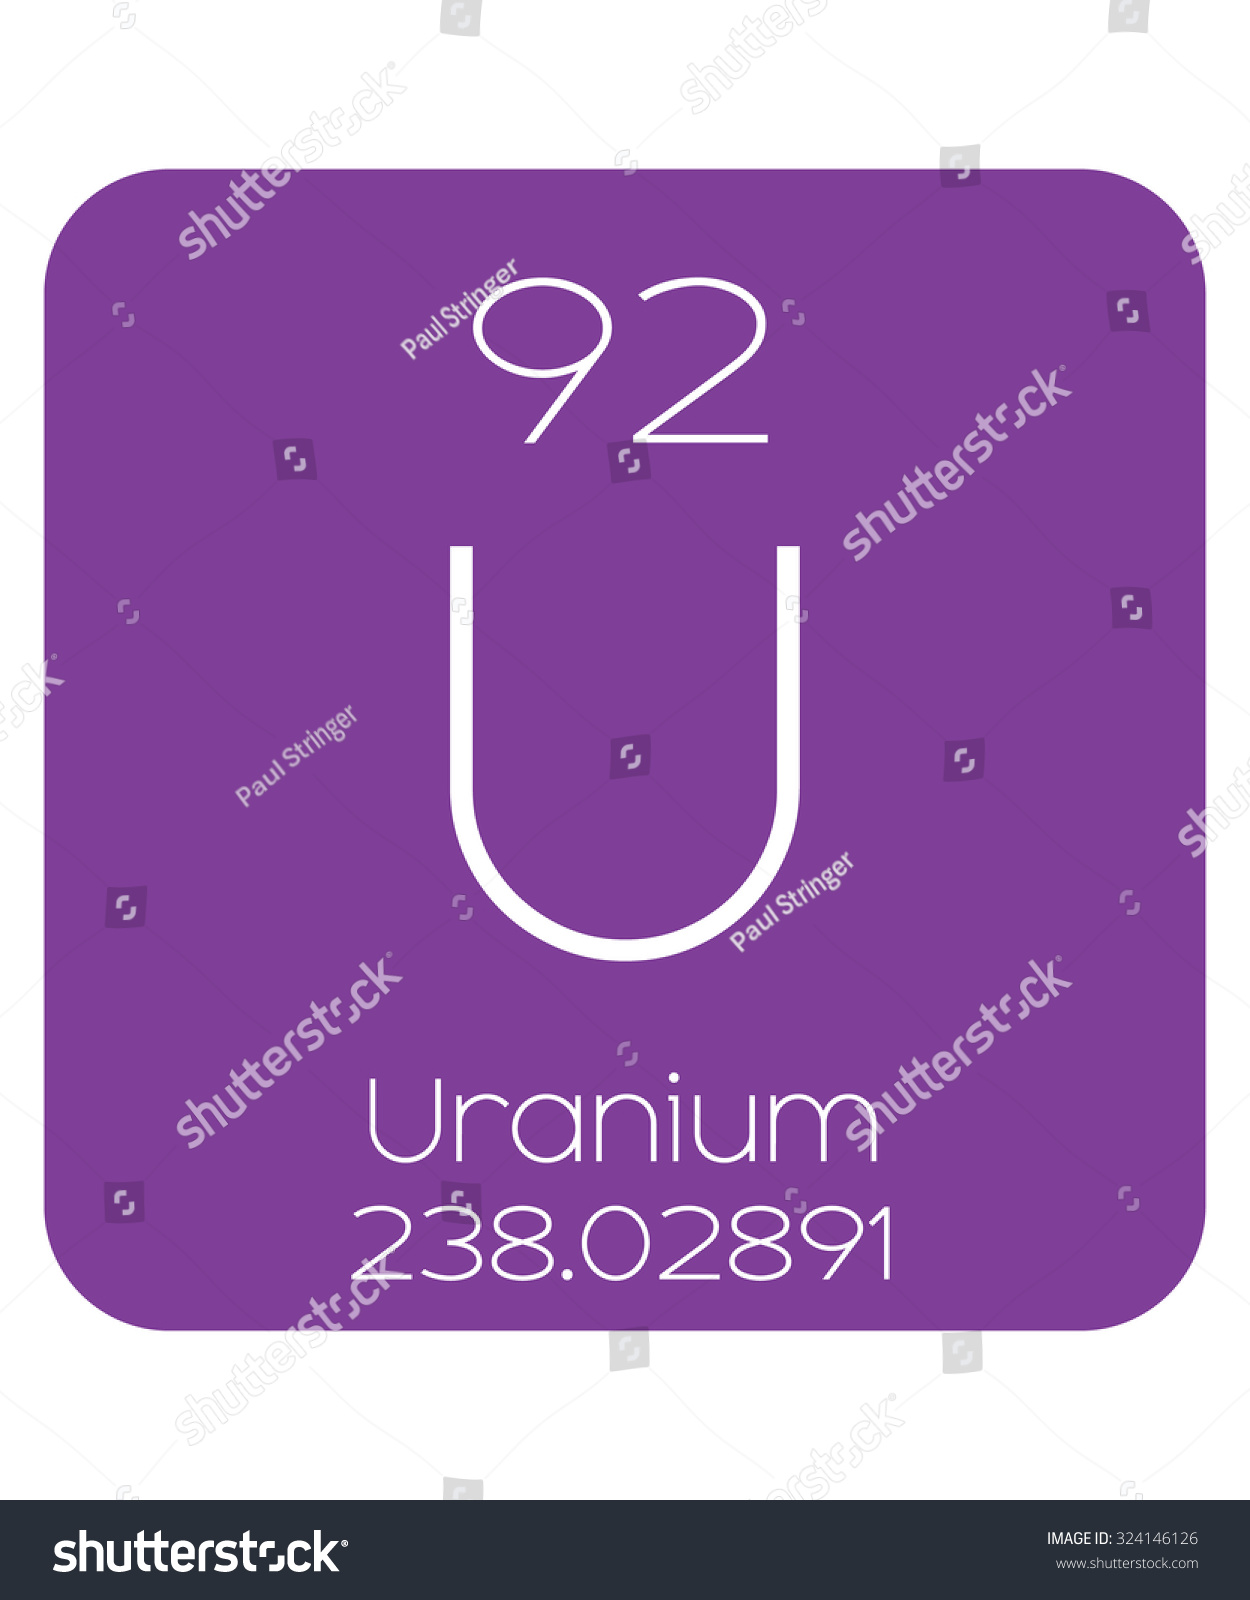 Periodic table elements uranium stock illustration 324146126 the periodic table of the elements uranium gamestrikefo Image collections